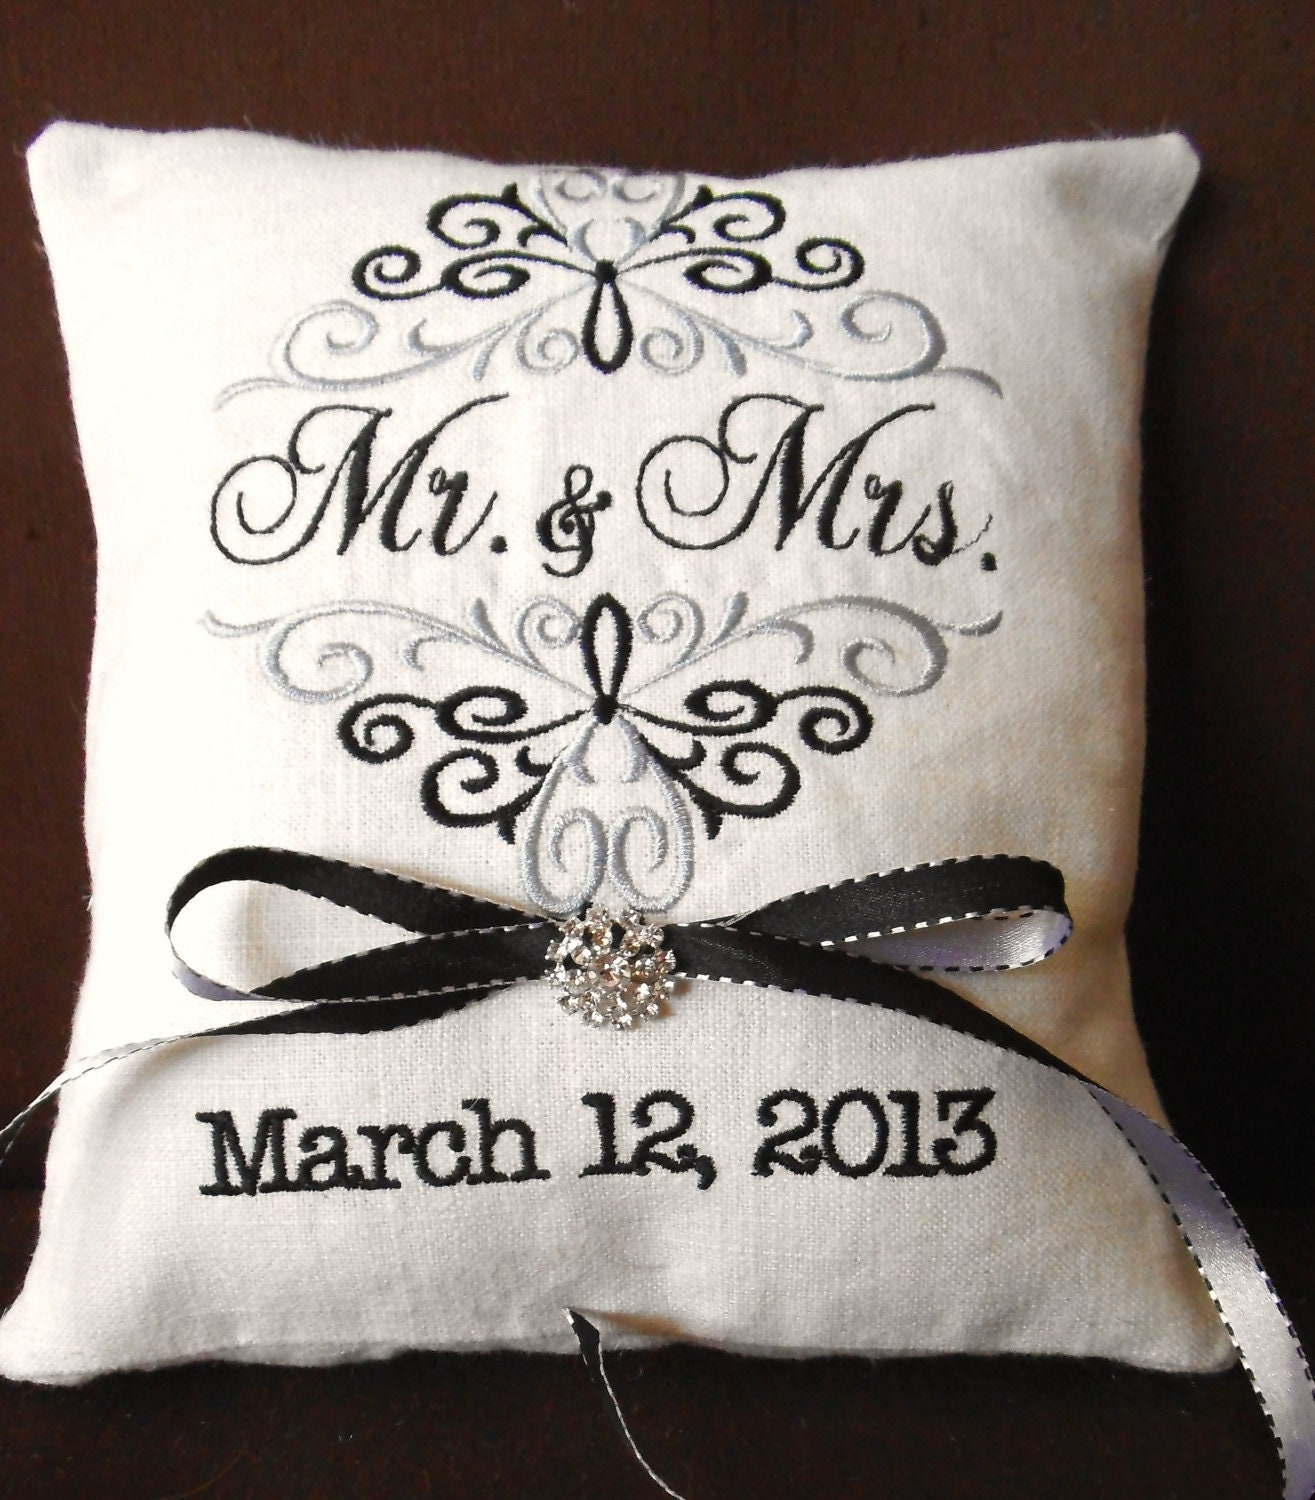 Monogram Wedding Ring Bearer Pillow: Mr. & Mrs. Personalized Embroidery Ring Bearer Pillow